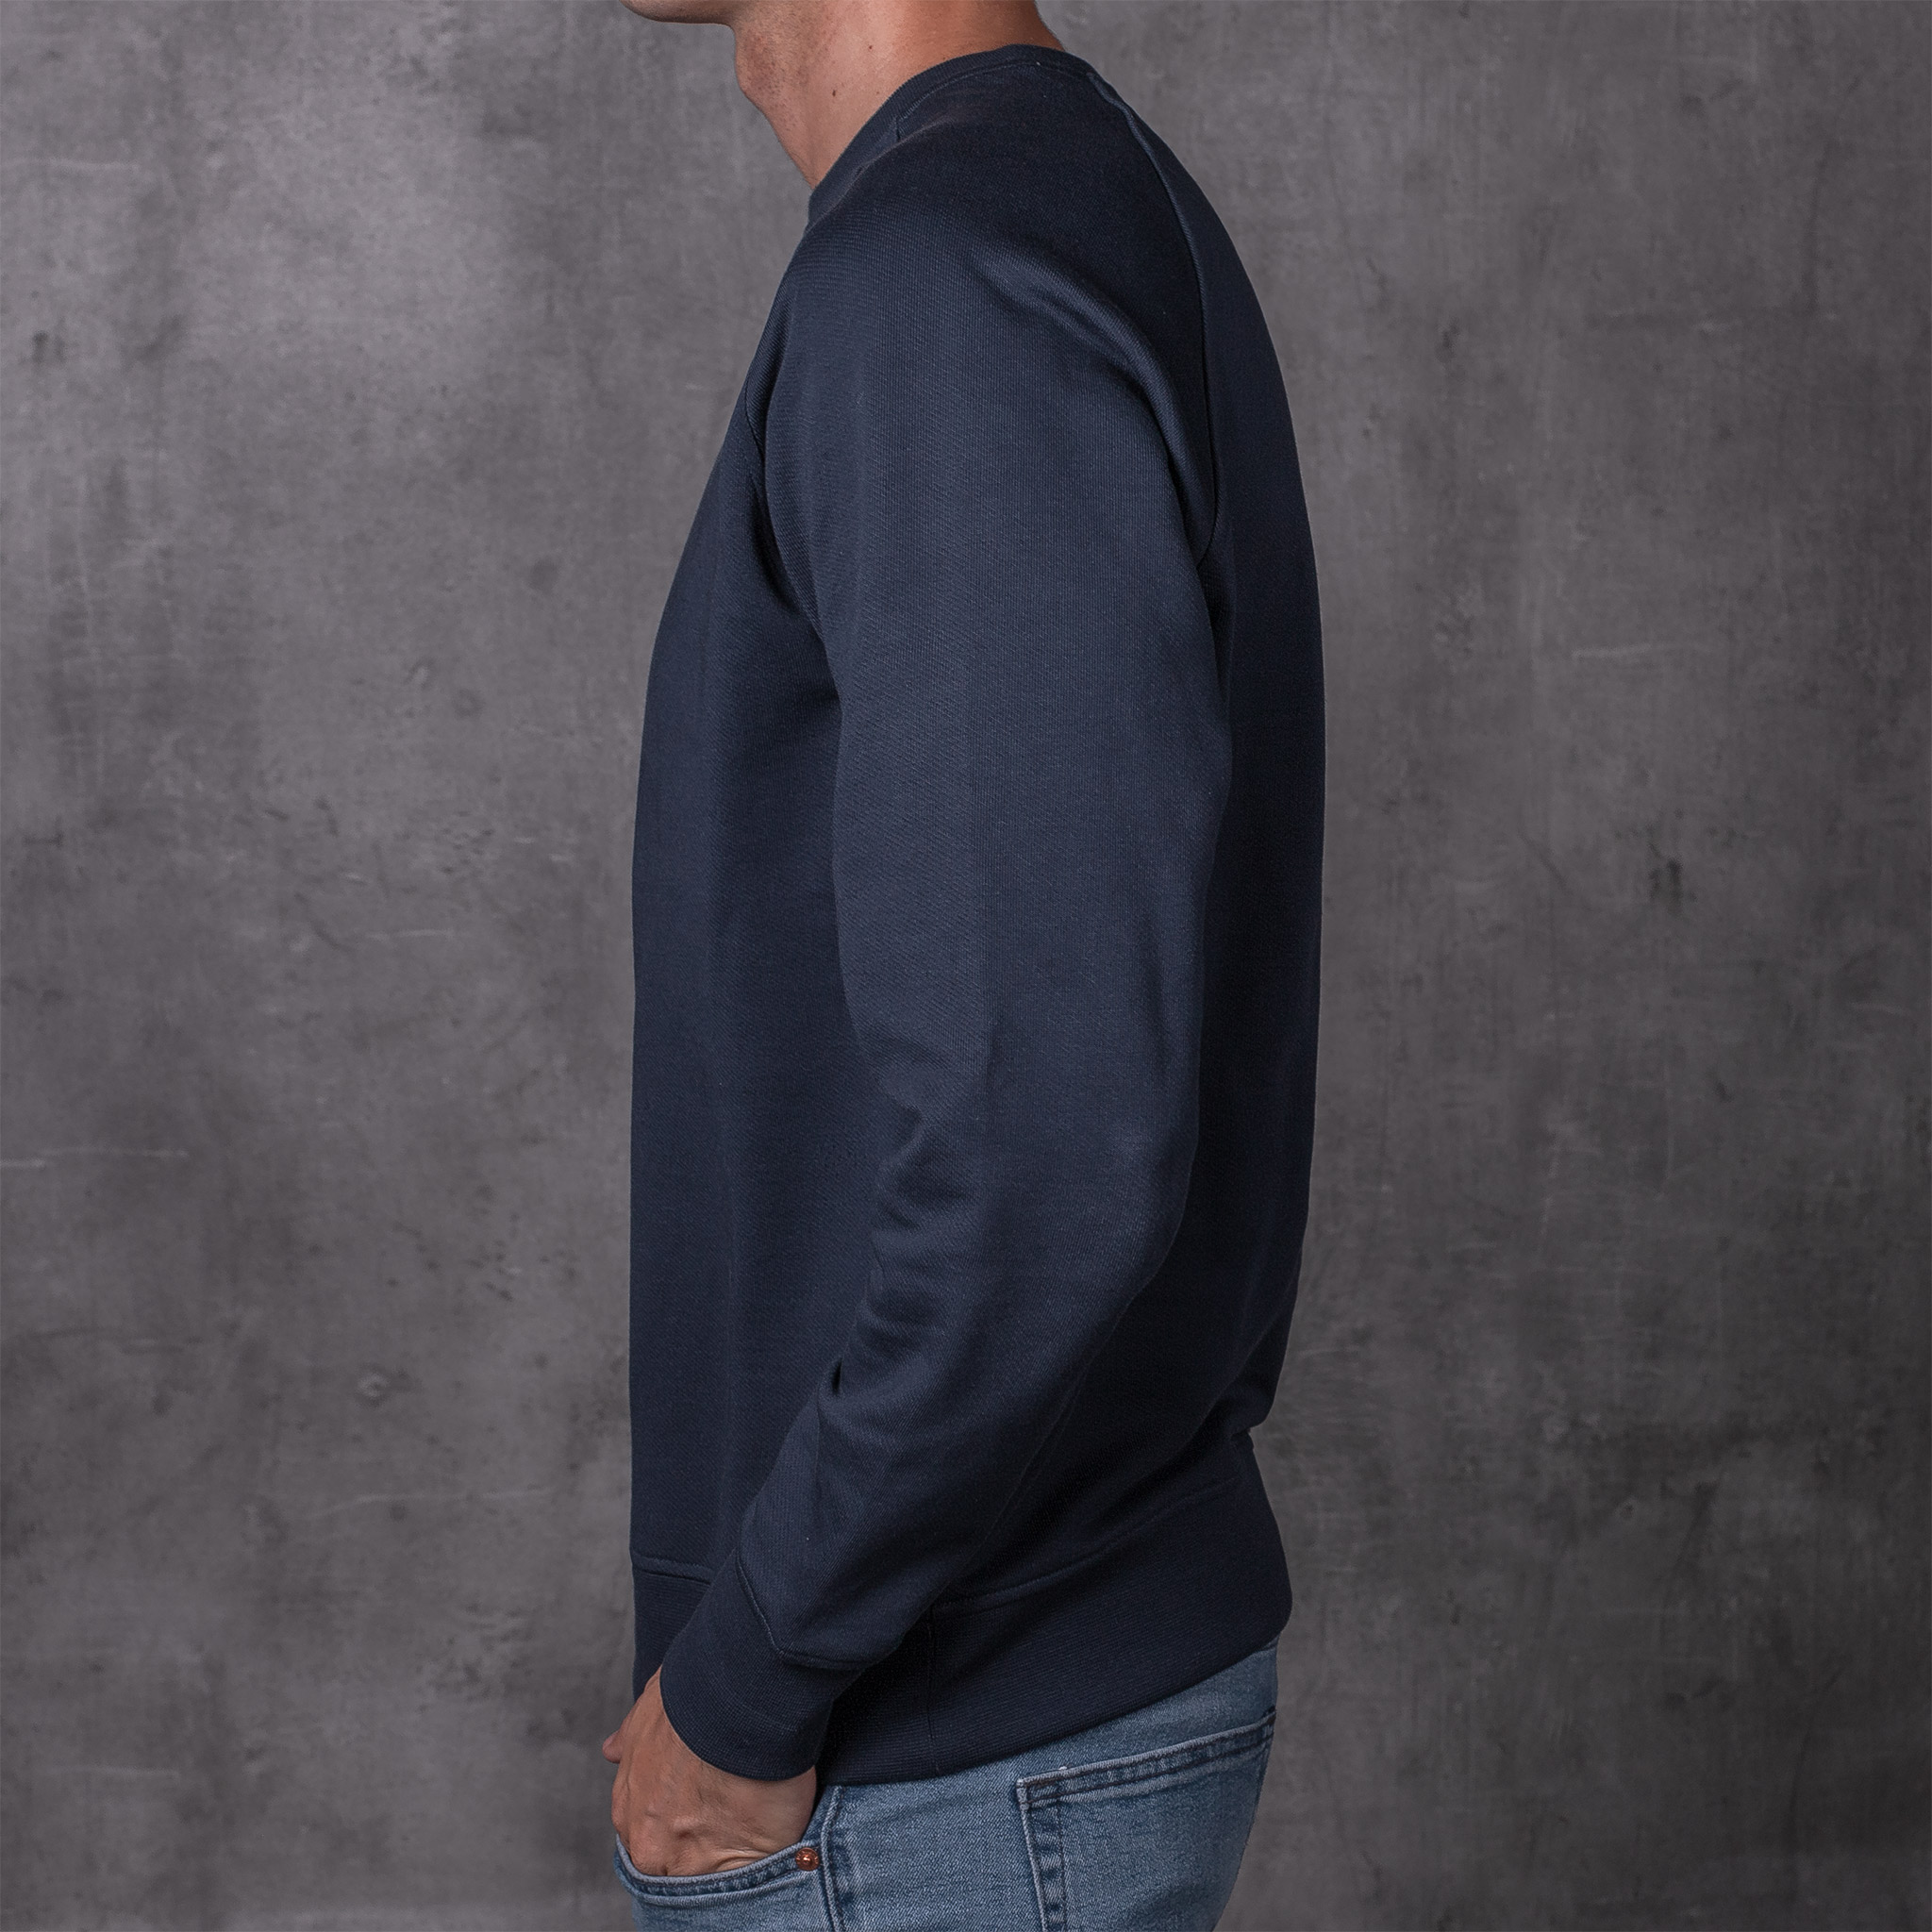 SWEATSHIRT 01.01 NAVY SUDADERA 01.01 AZUL The Seëlk 2